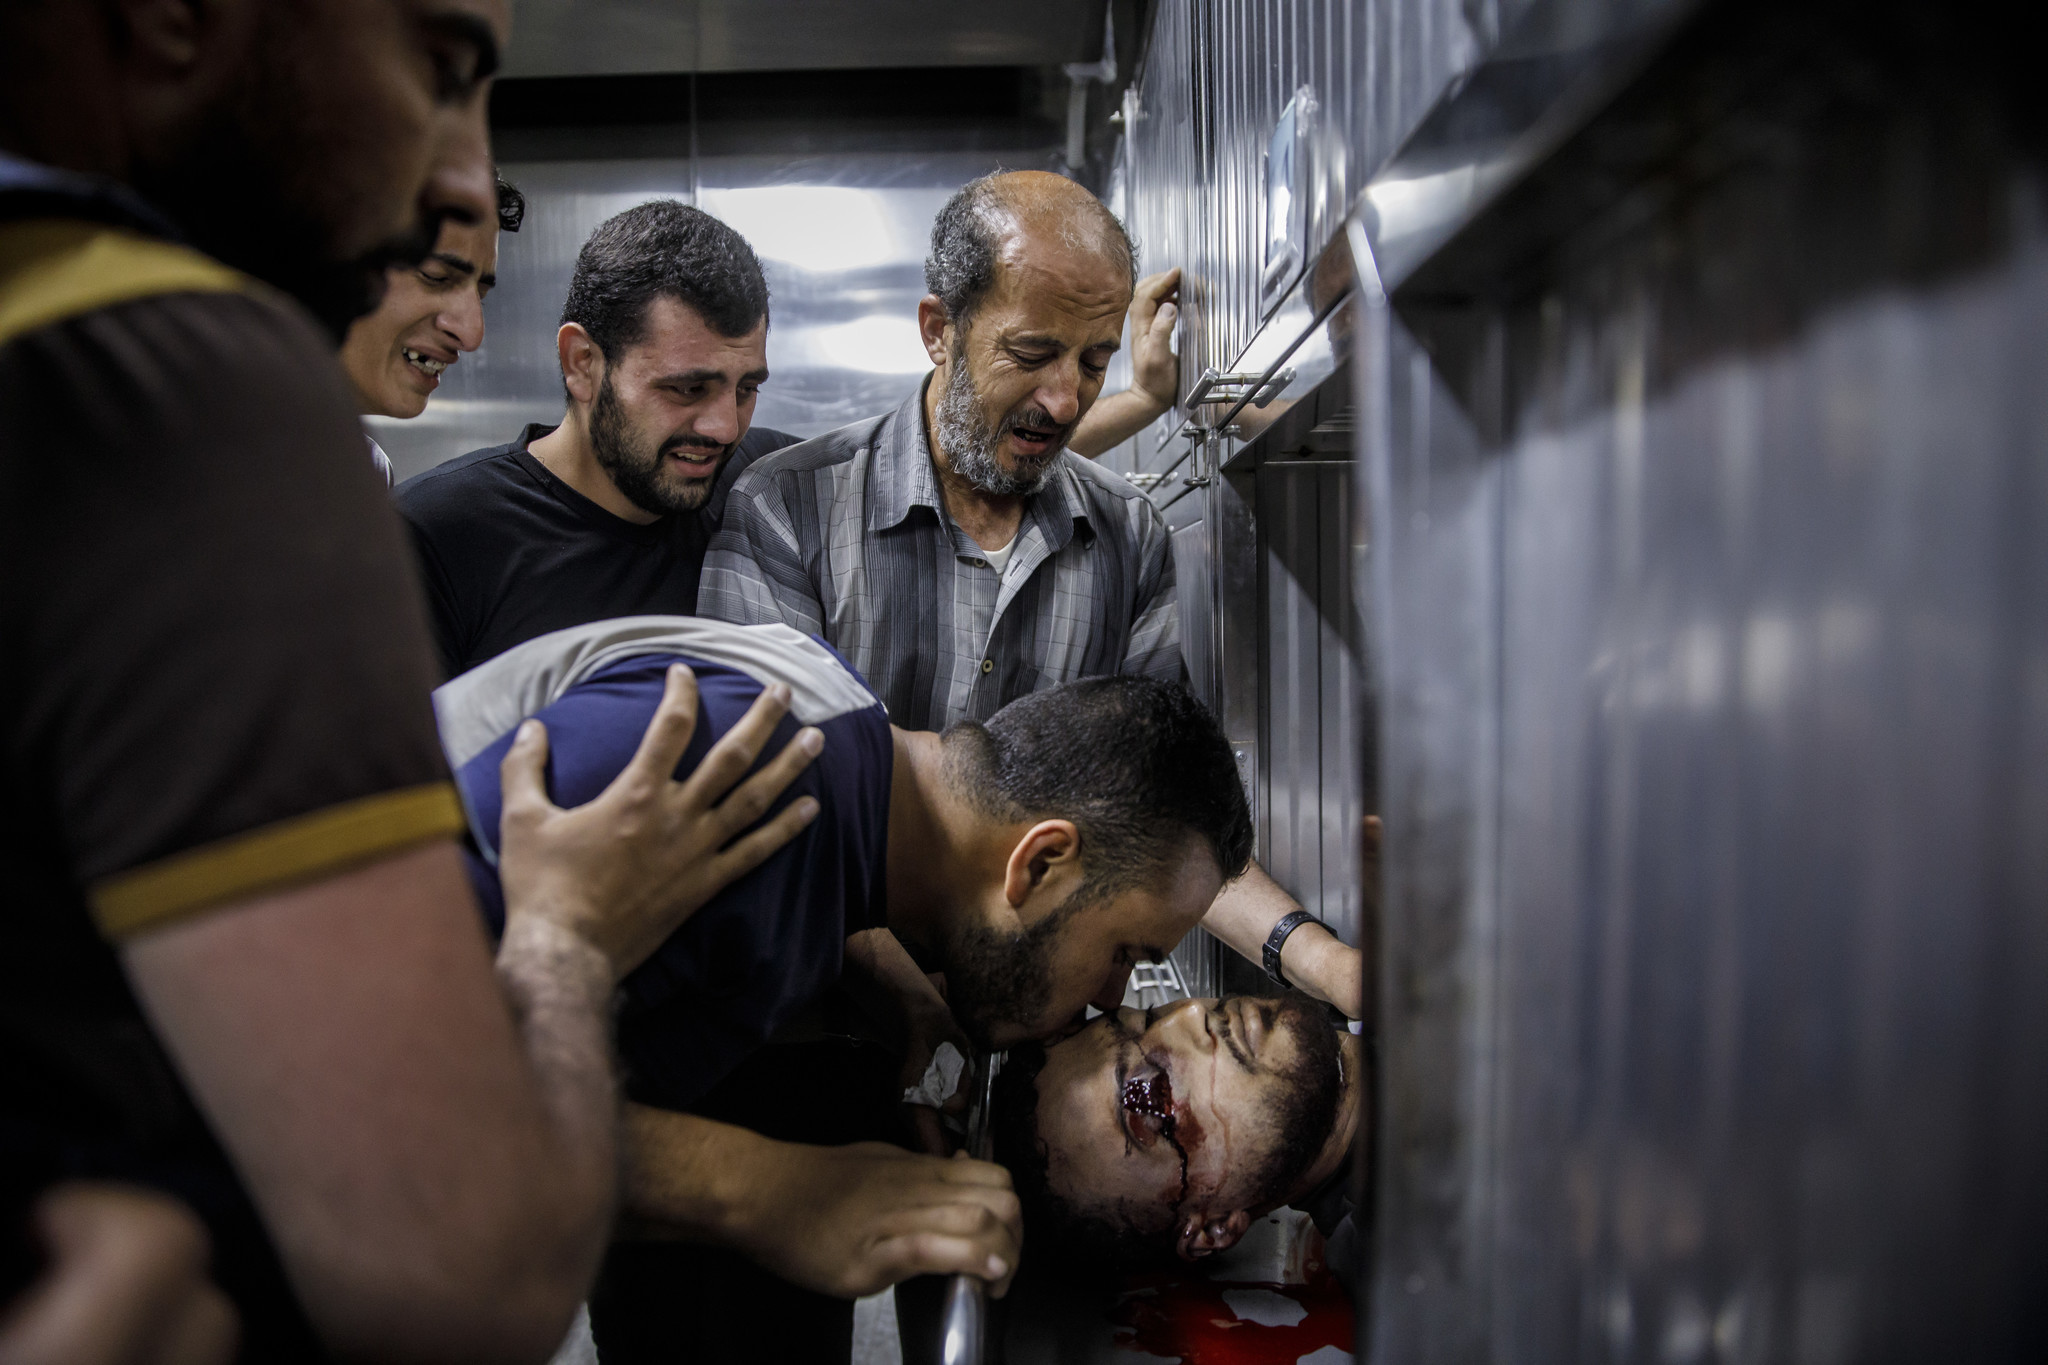 GAZA CITY, GAZA — MONDAY, MAY 14, 2018: Ibraheem Mohammed Al-Tubassi, father, top, and othe family